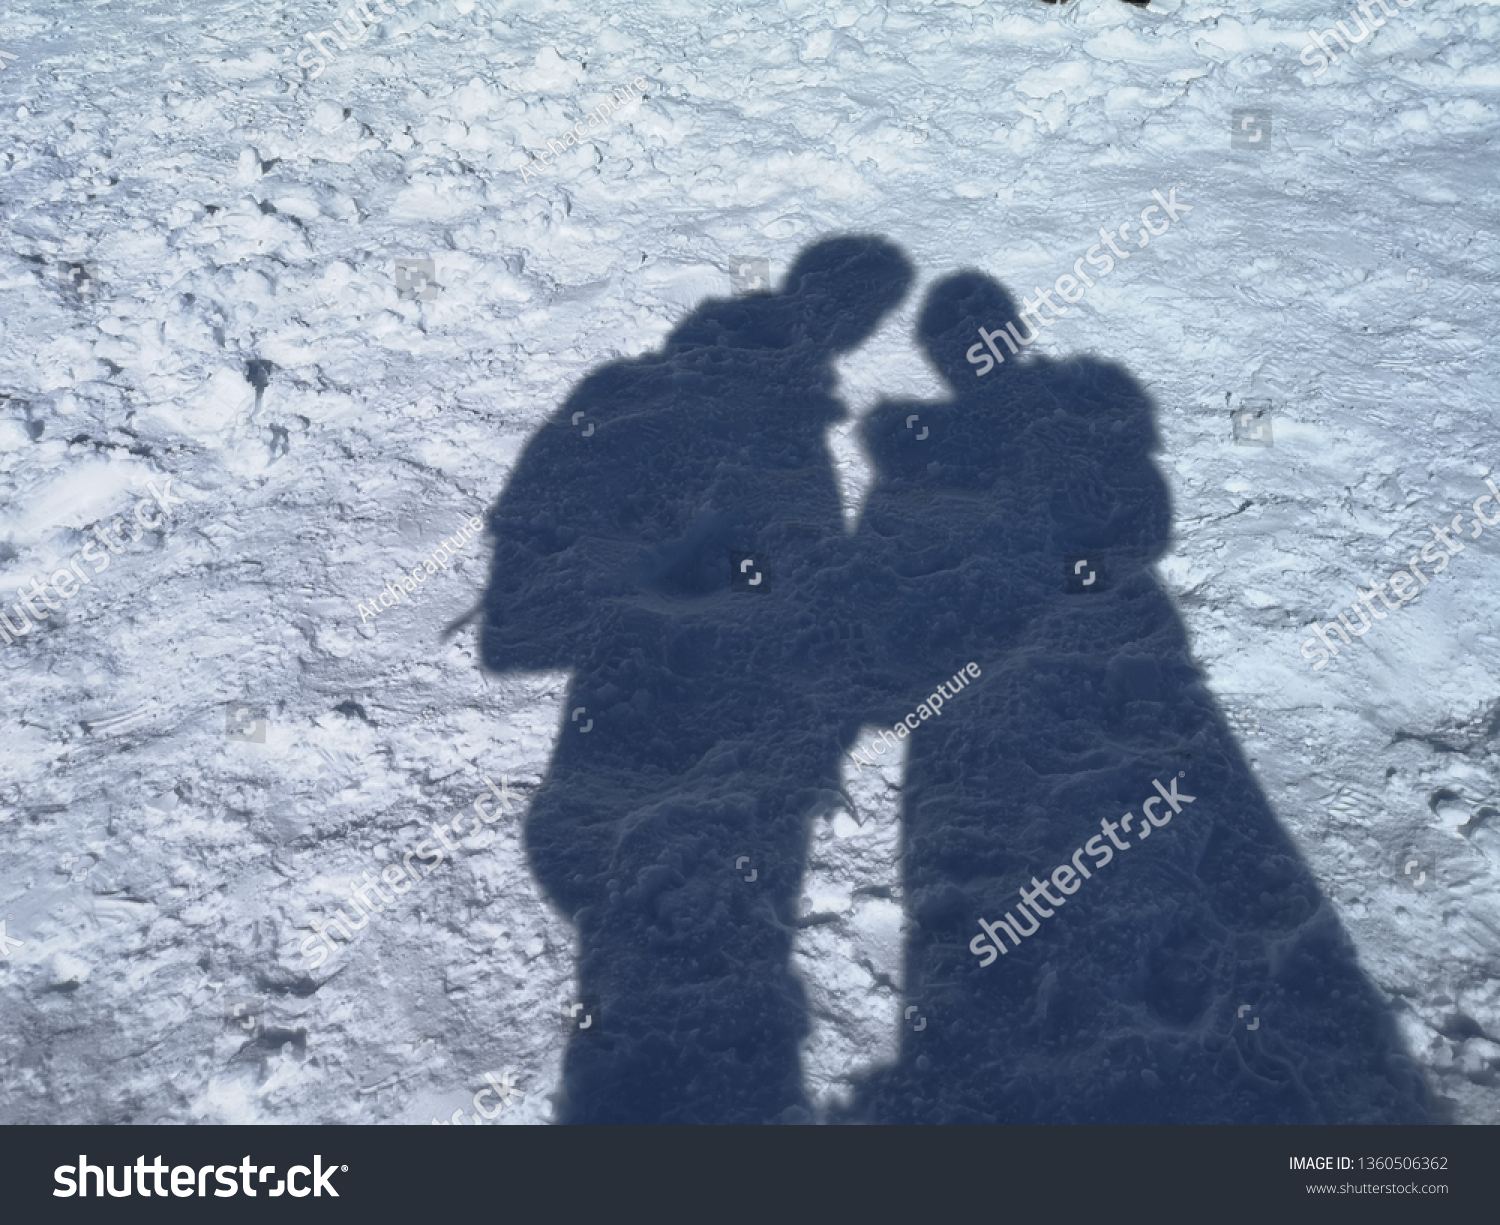 Couple shadow in snow under winter times. Secret Lovers, Lover Journeys. #1360506362